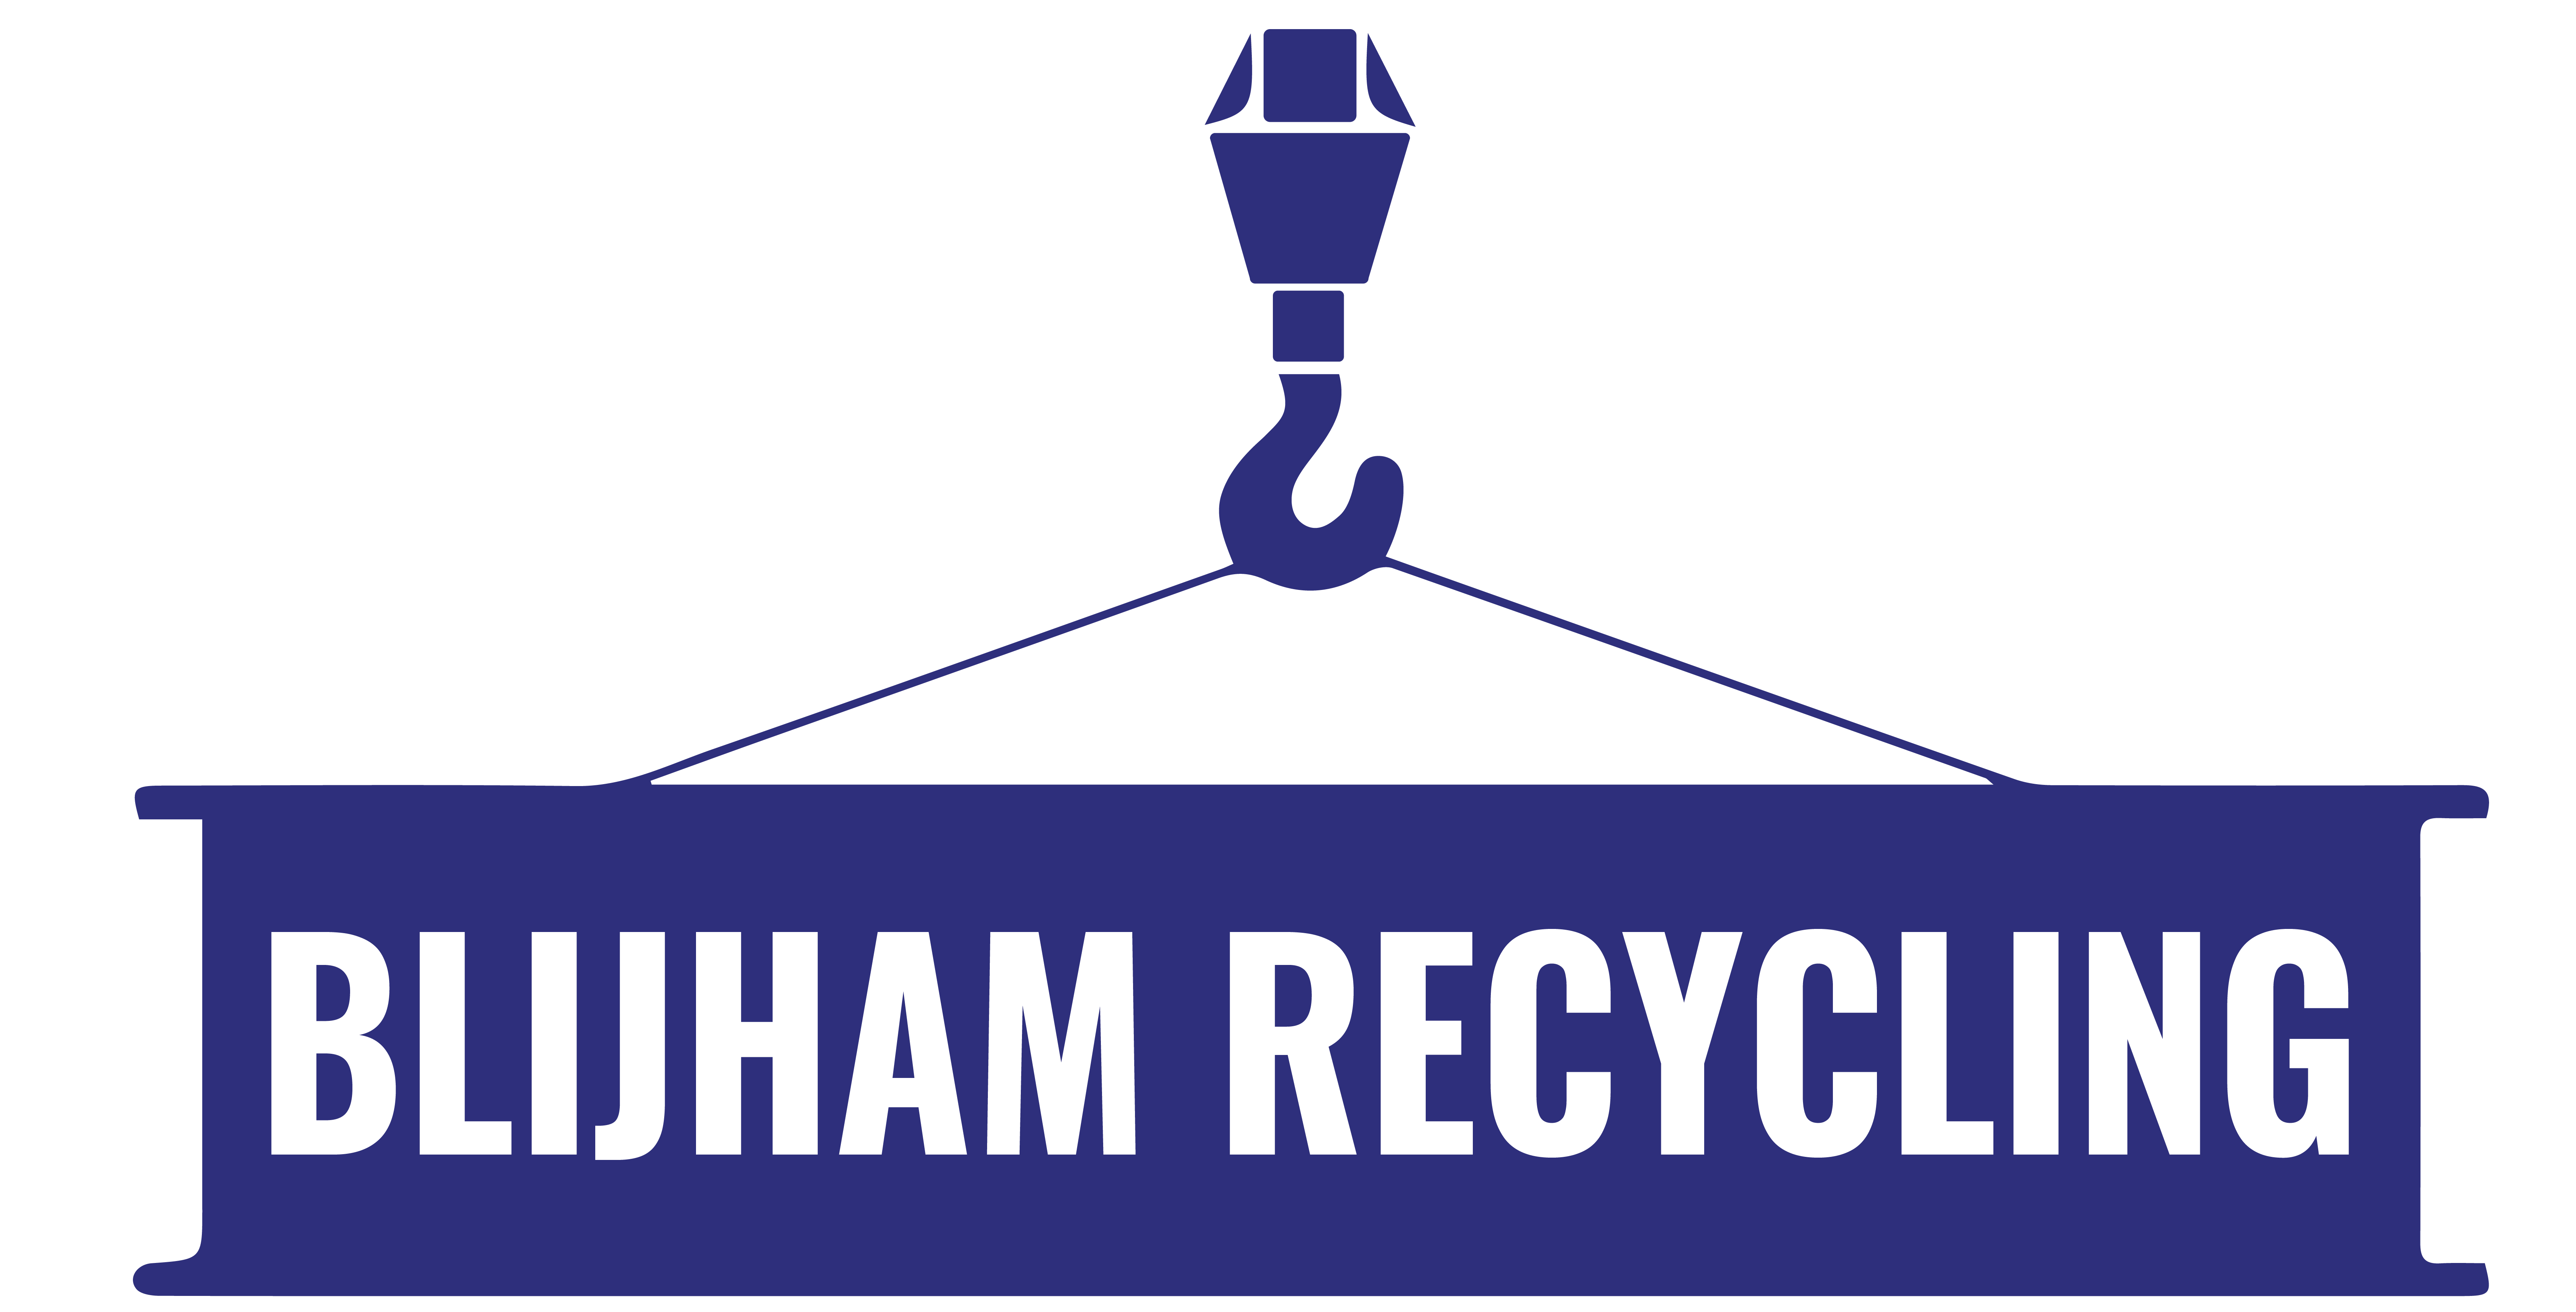 Blijham Recycling